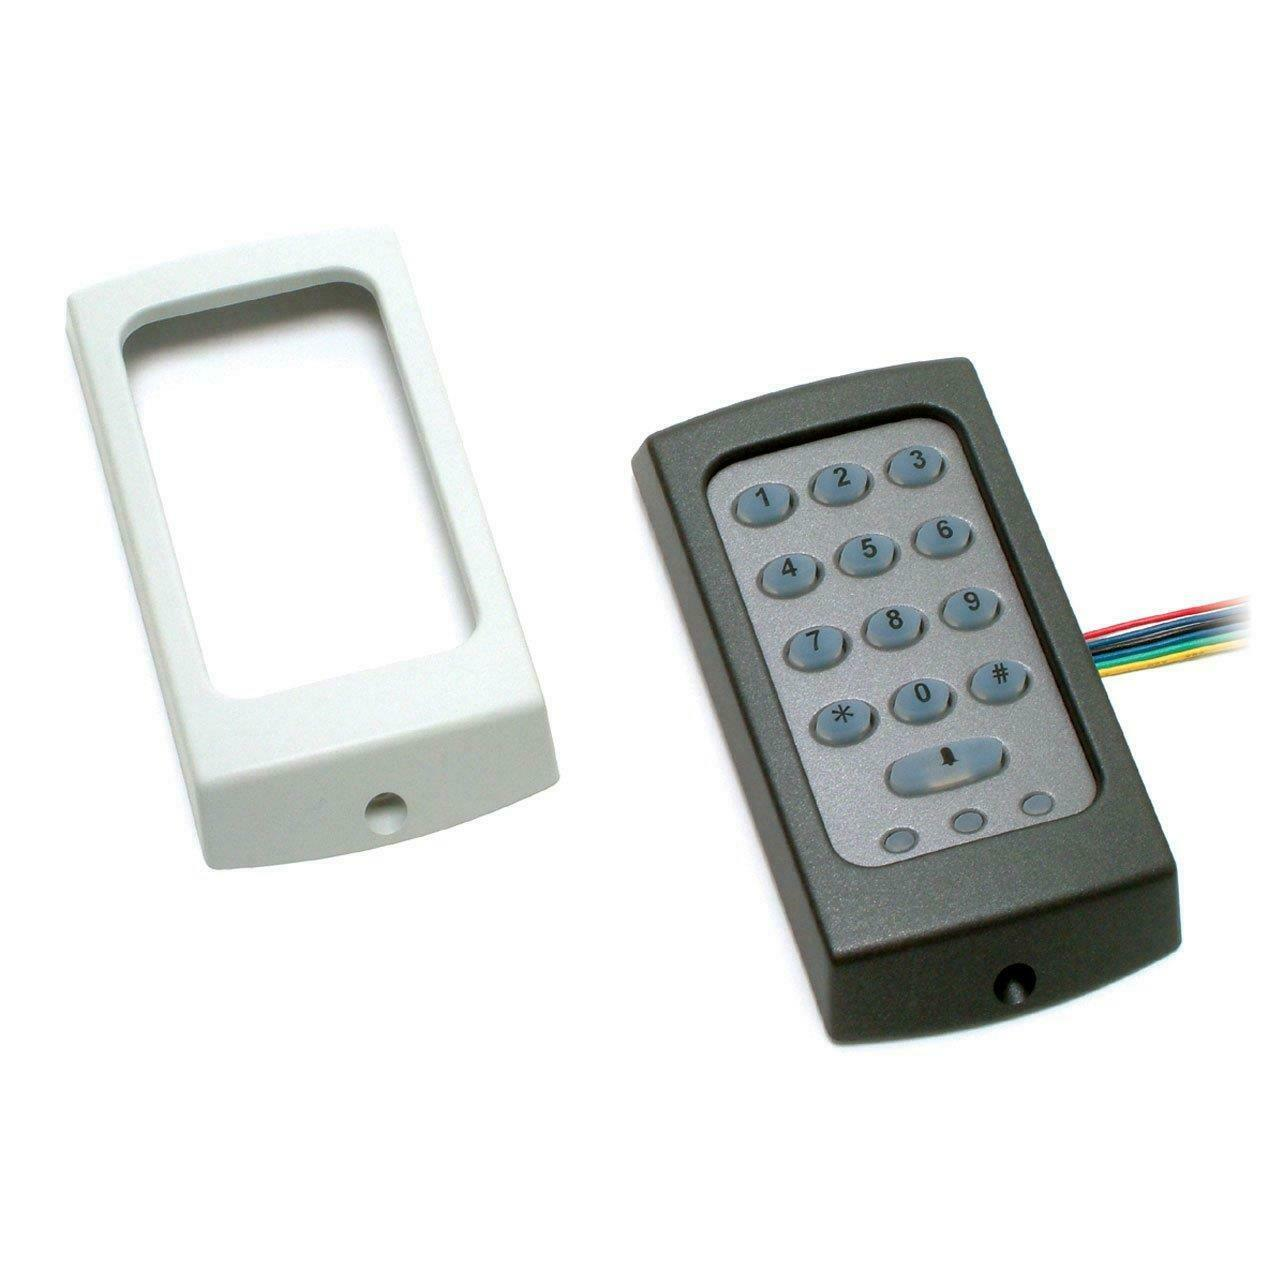 Paxton 351-110-EX K50 Compact Touchlock Keypad for Switch2 and Net2 Systems